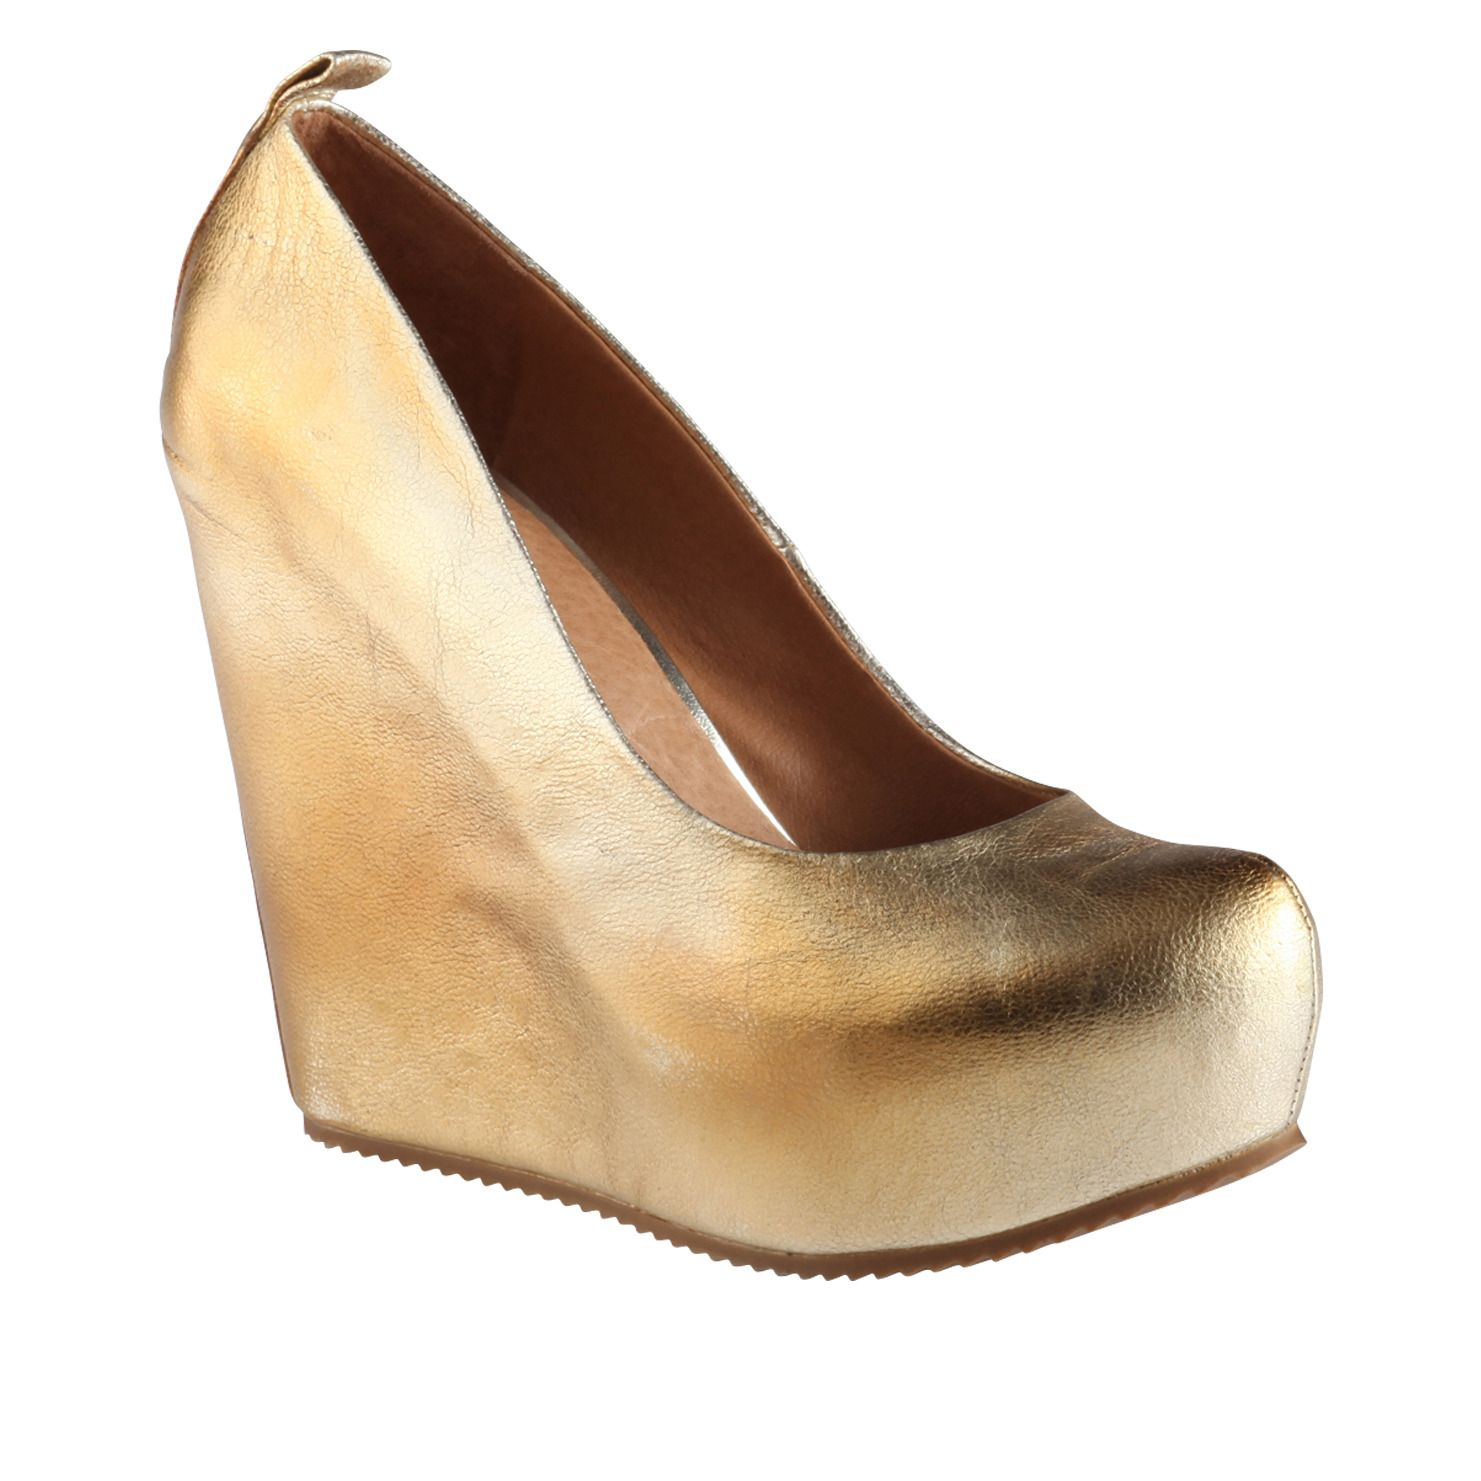 c07b45fba74 ZINGG - women s wedges shoes for sale at ALDO Shoes.